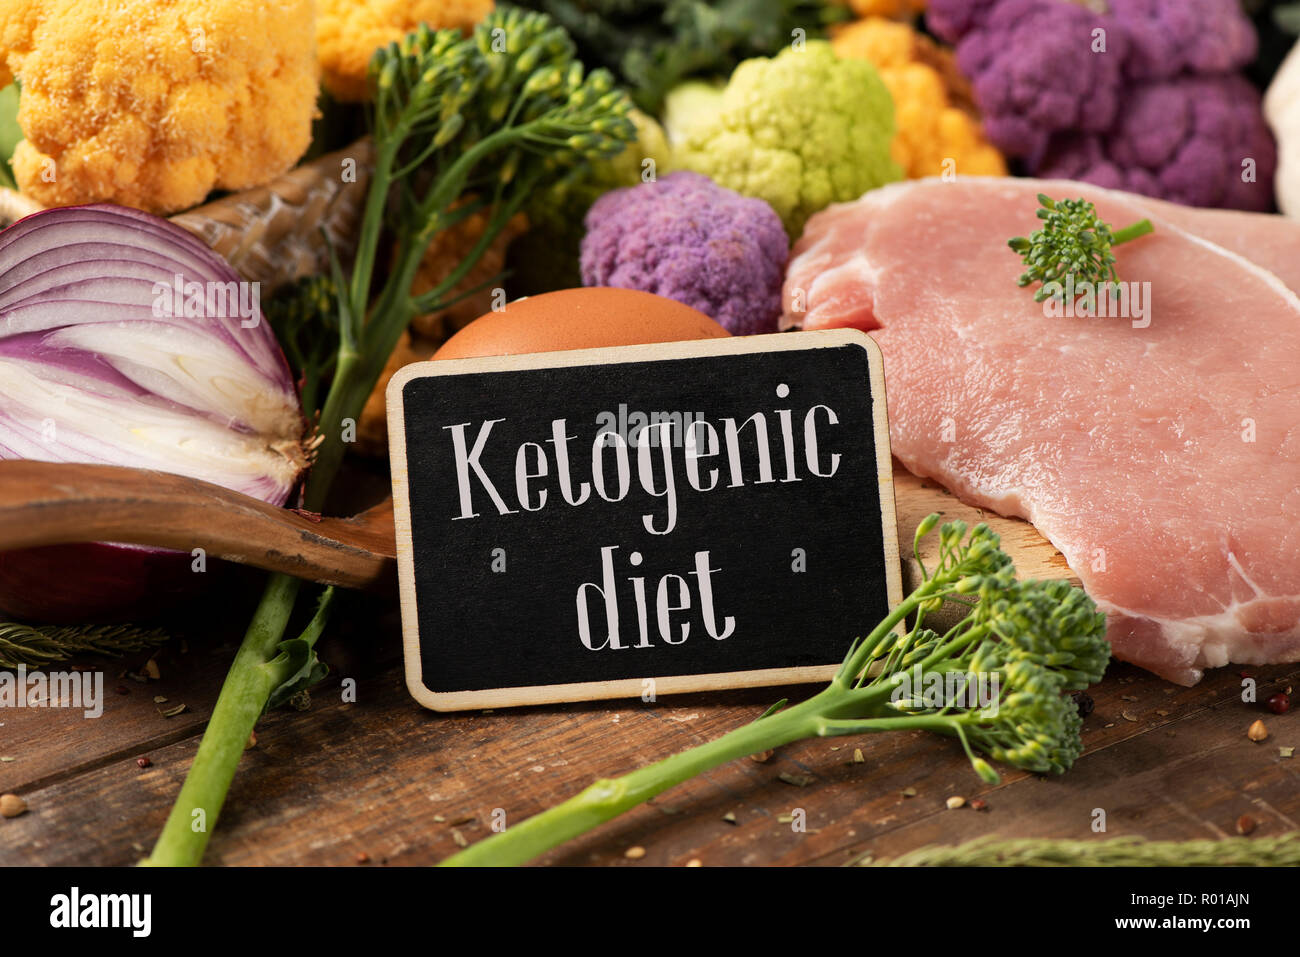 closeup of a signboard with the text ketogenic diet, a diet to treat the infantile epilepsy, on a pile of some different raw food, such as eggs, diffe - Stock Image